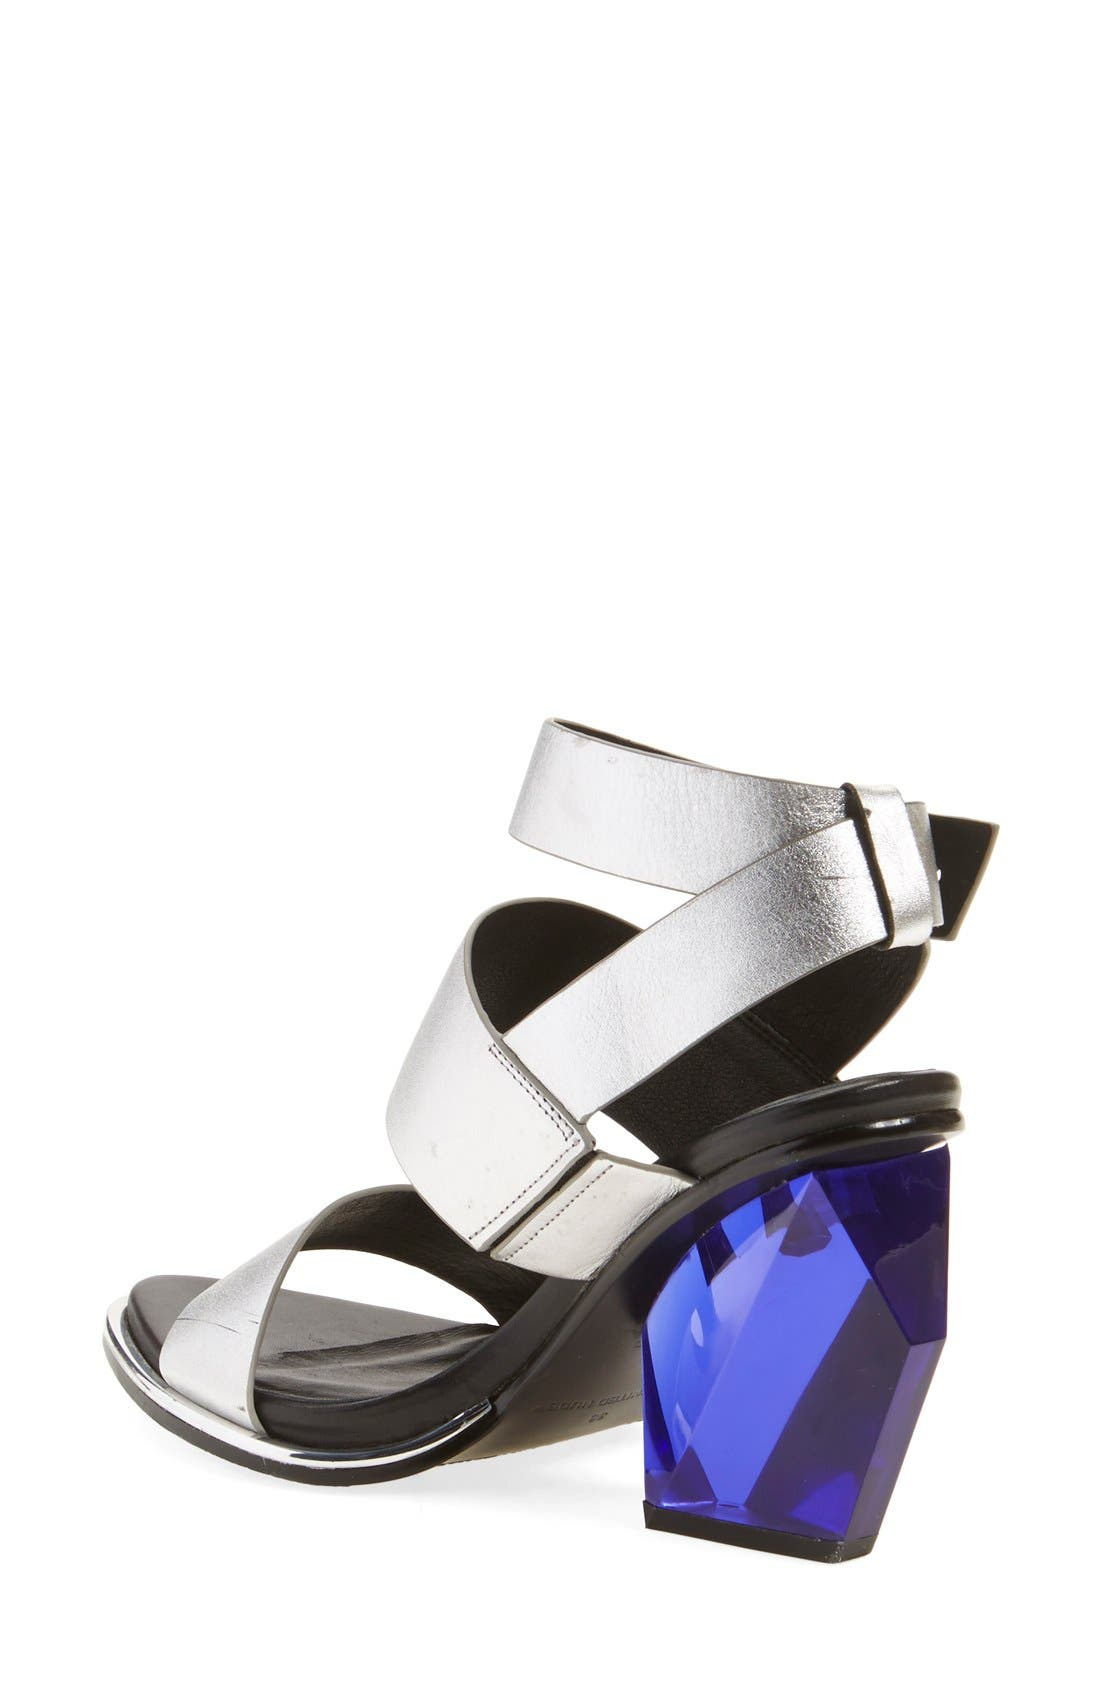 UNITED NUDE COLLECTION,                             'Leona Hi' Ankle Strap Sandal,                             Alternate thumbnail 2, color,                             040